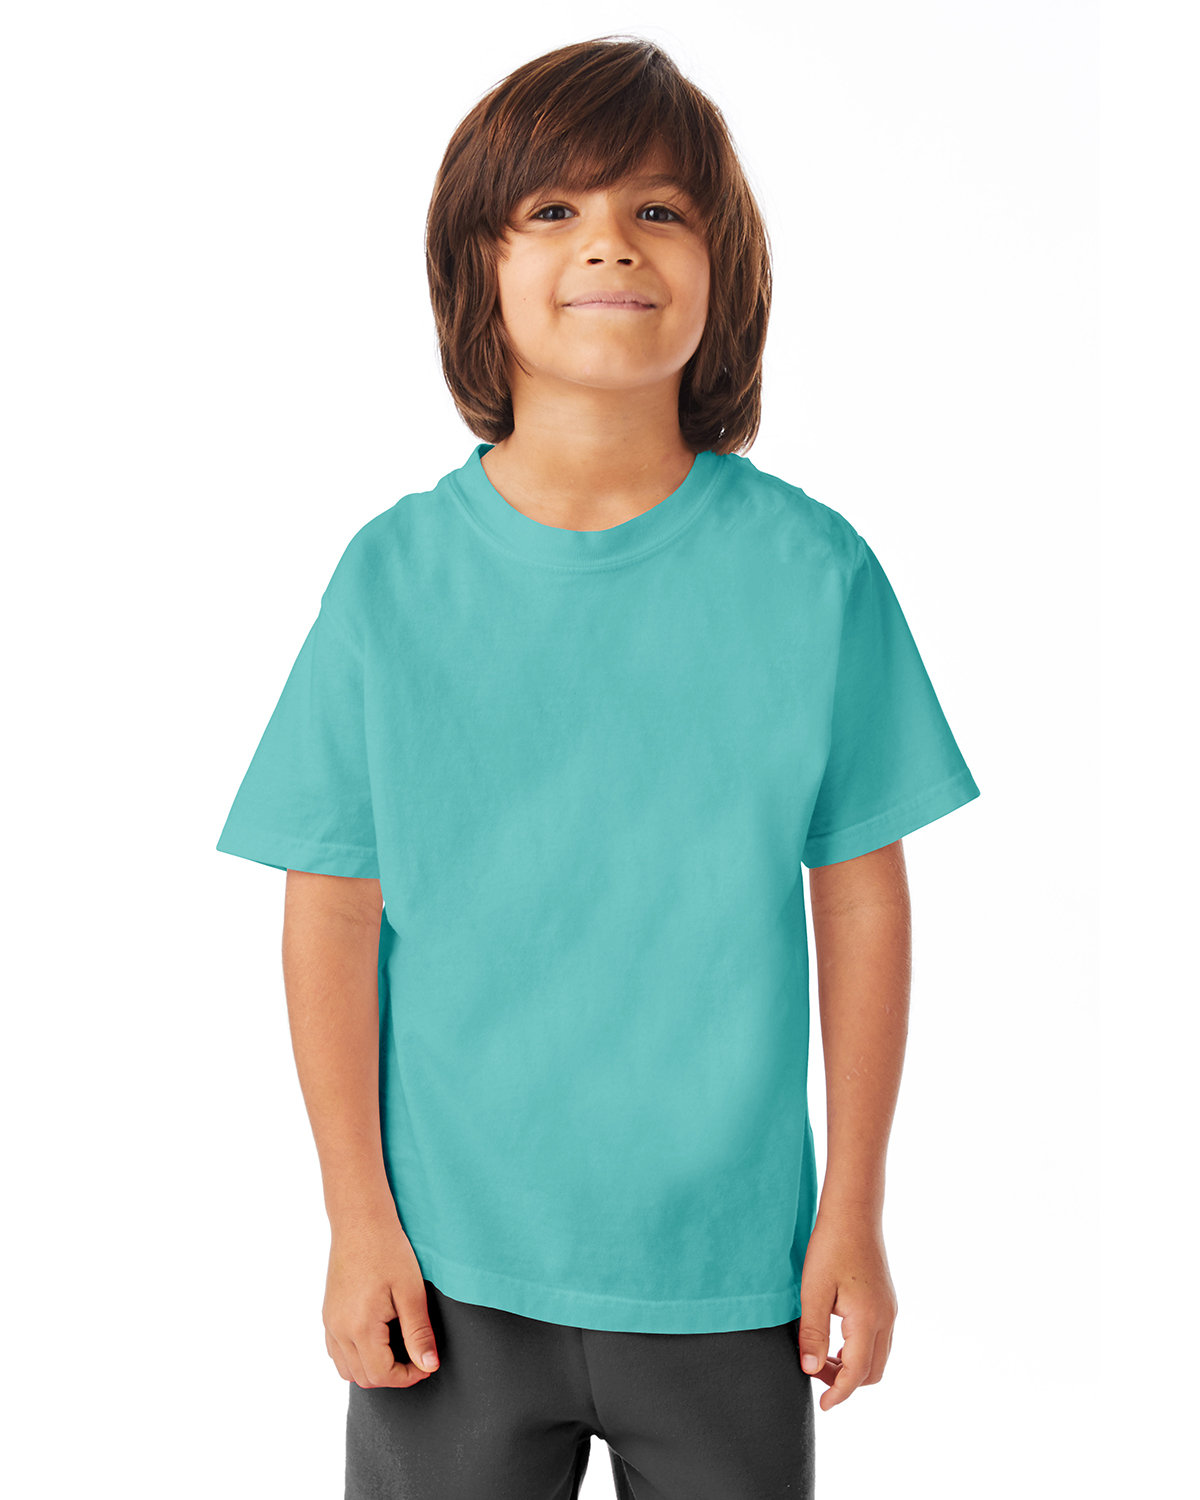 ComfortWash by Hanes Youth Garment-Dyed T-Shirt MINT